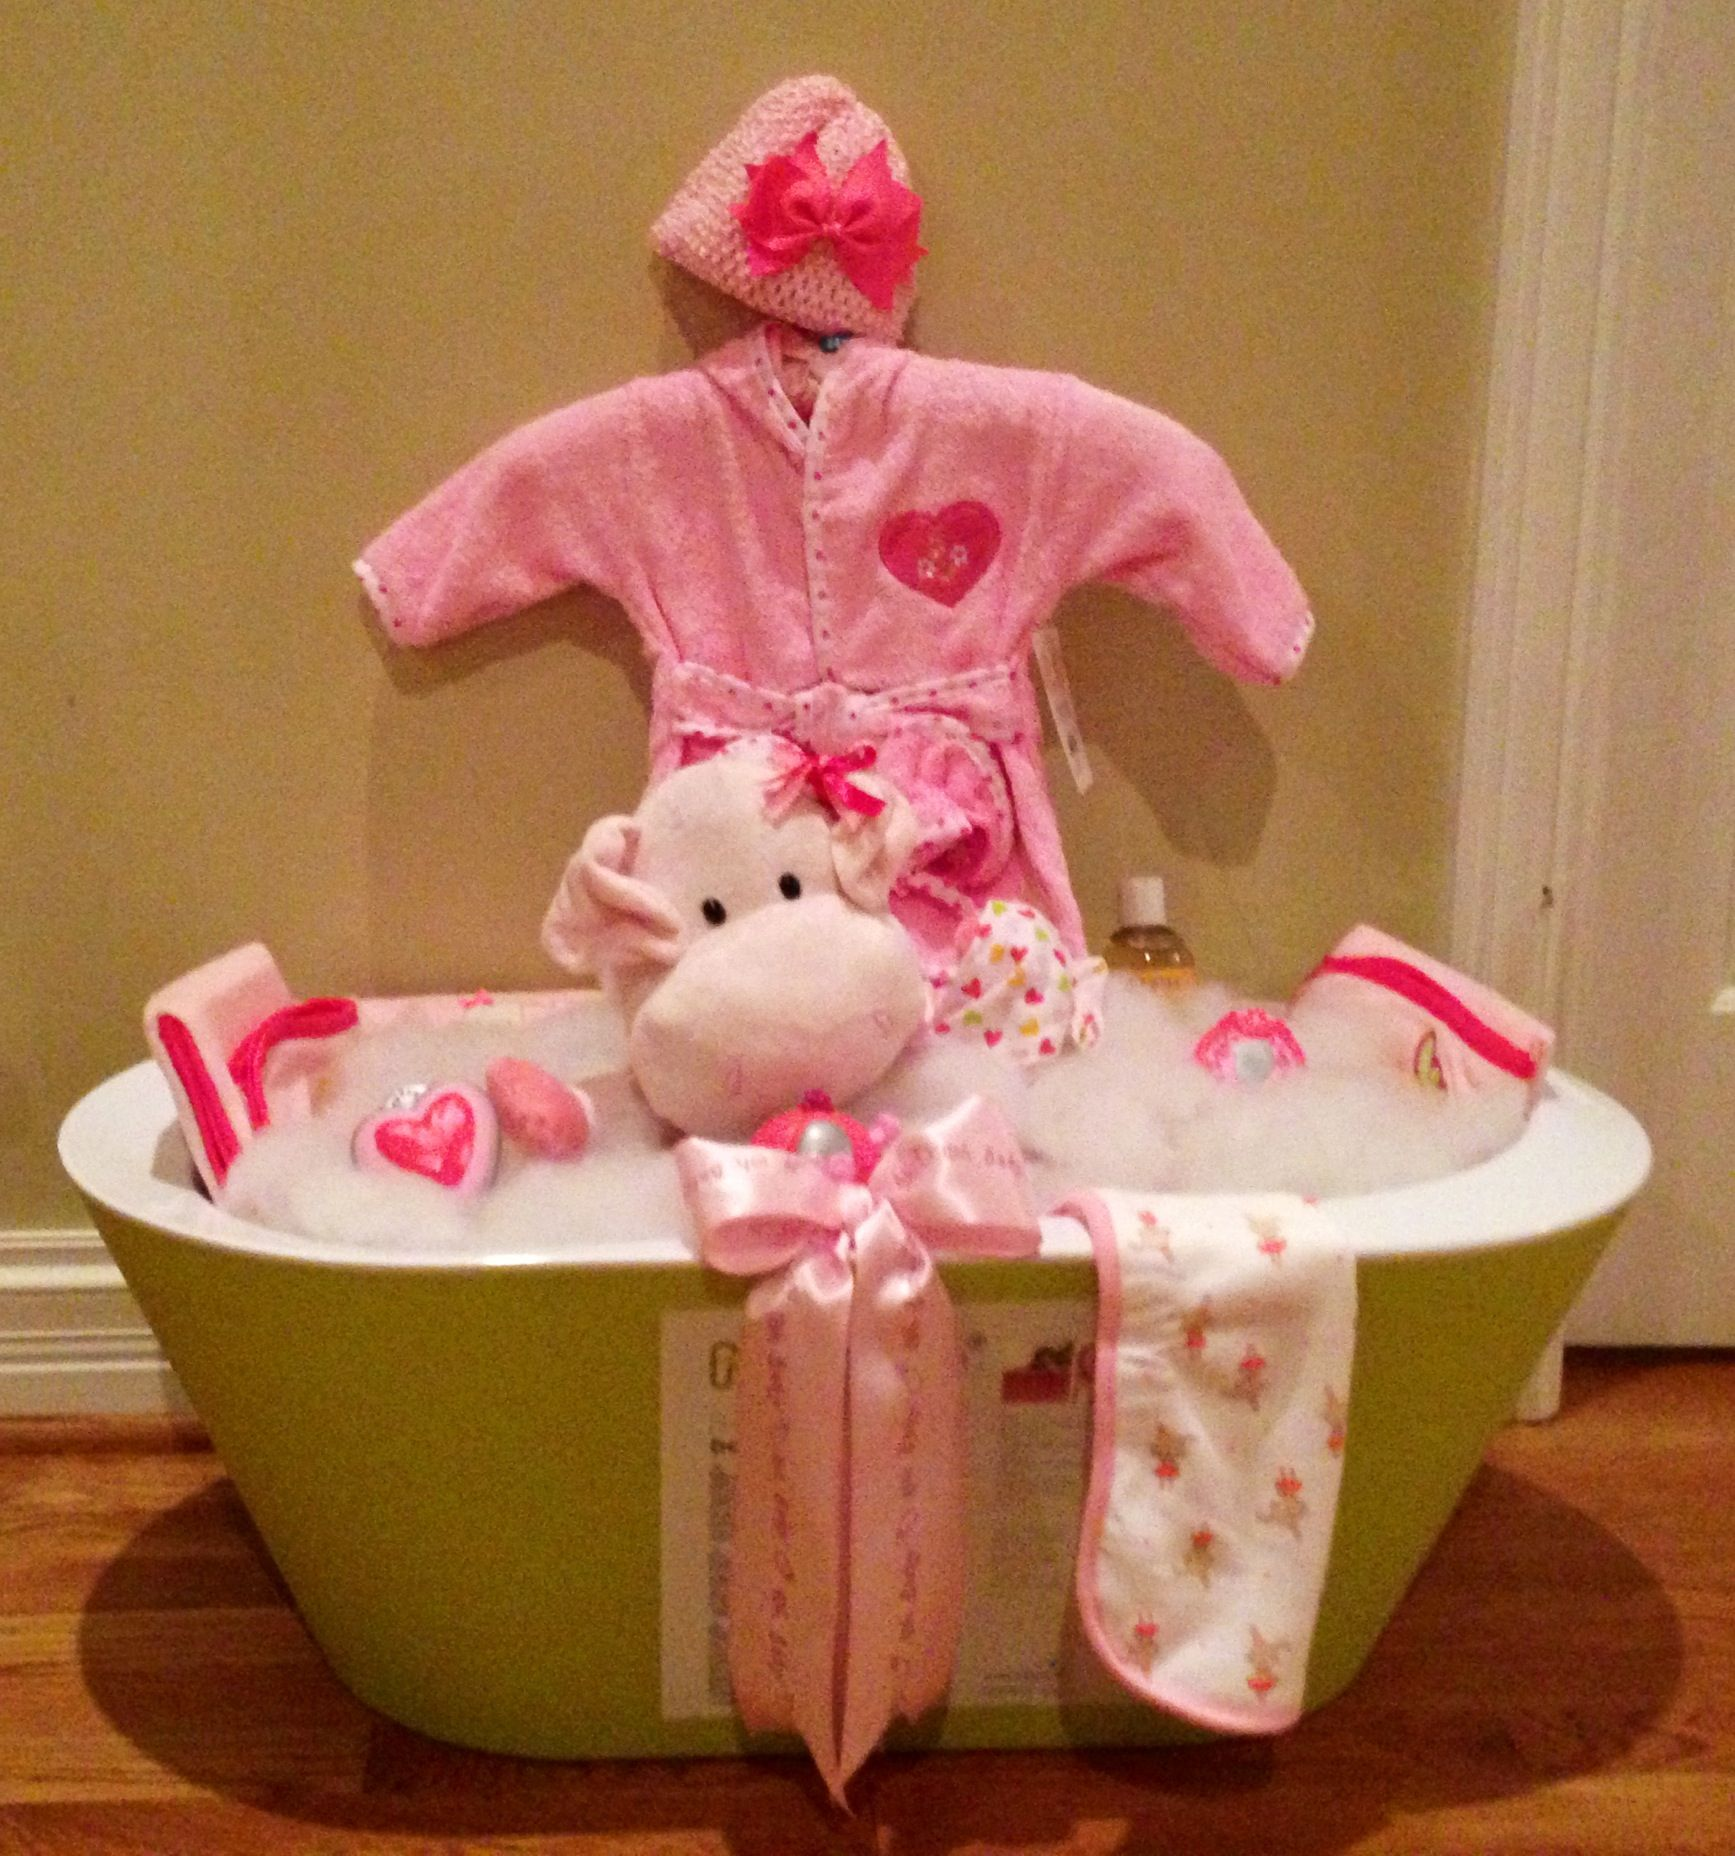 baby shower bath tub basket my creations pinterest babies diapers and gift. Black Bedroom Furniture Sets. Home Design Ideas